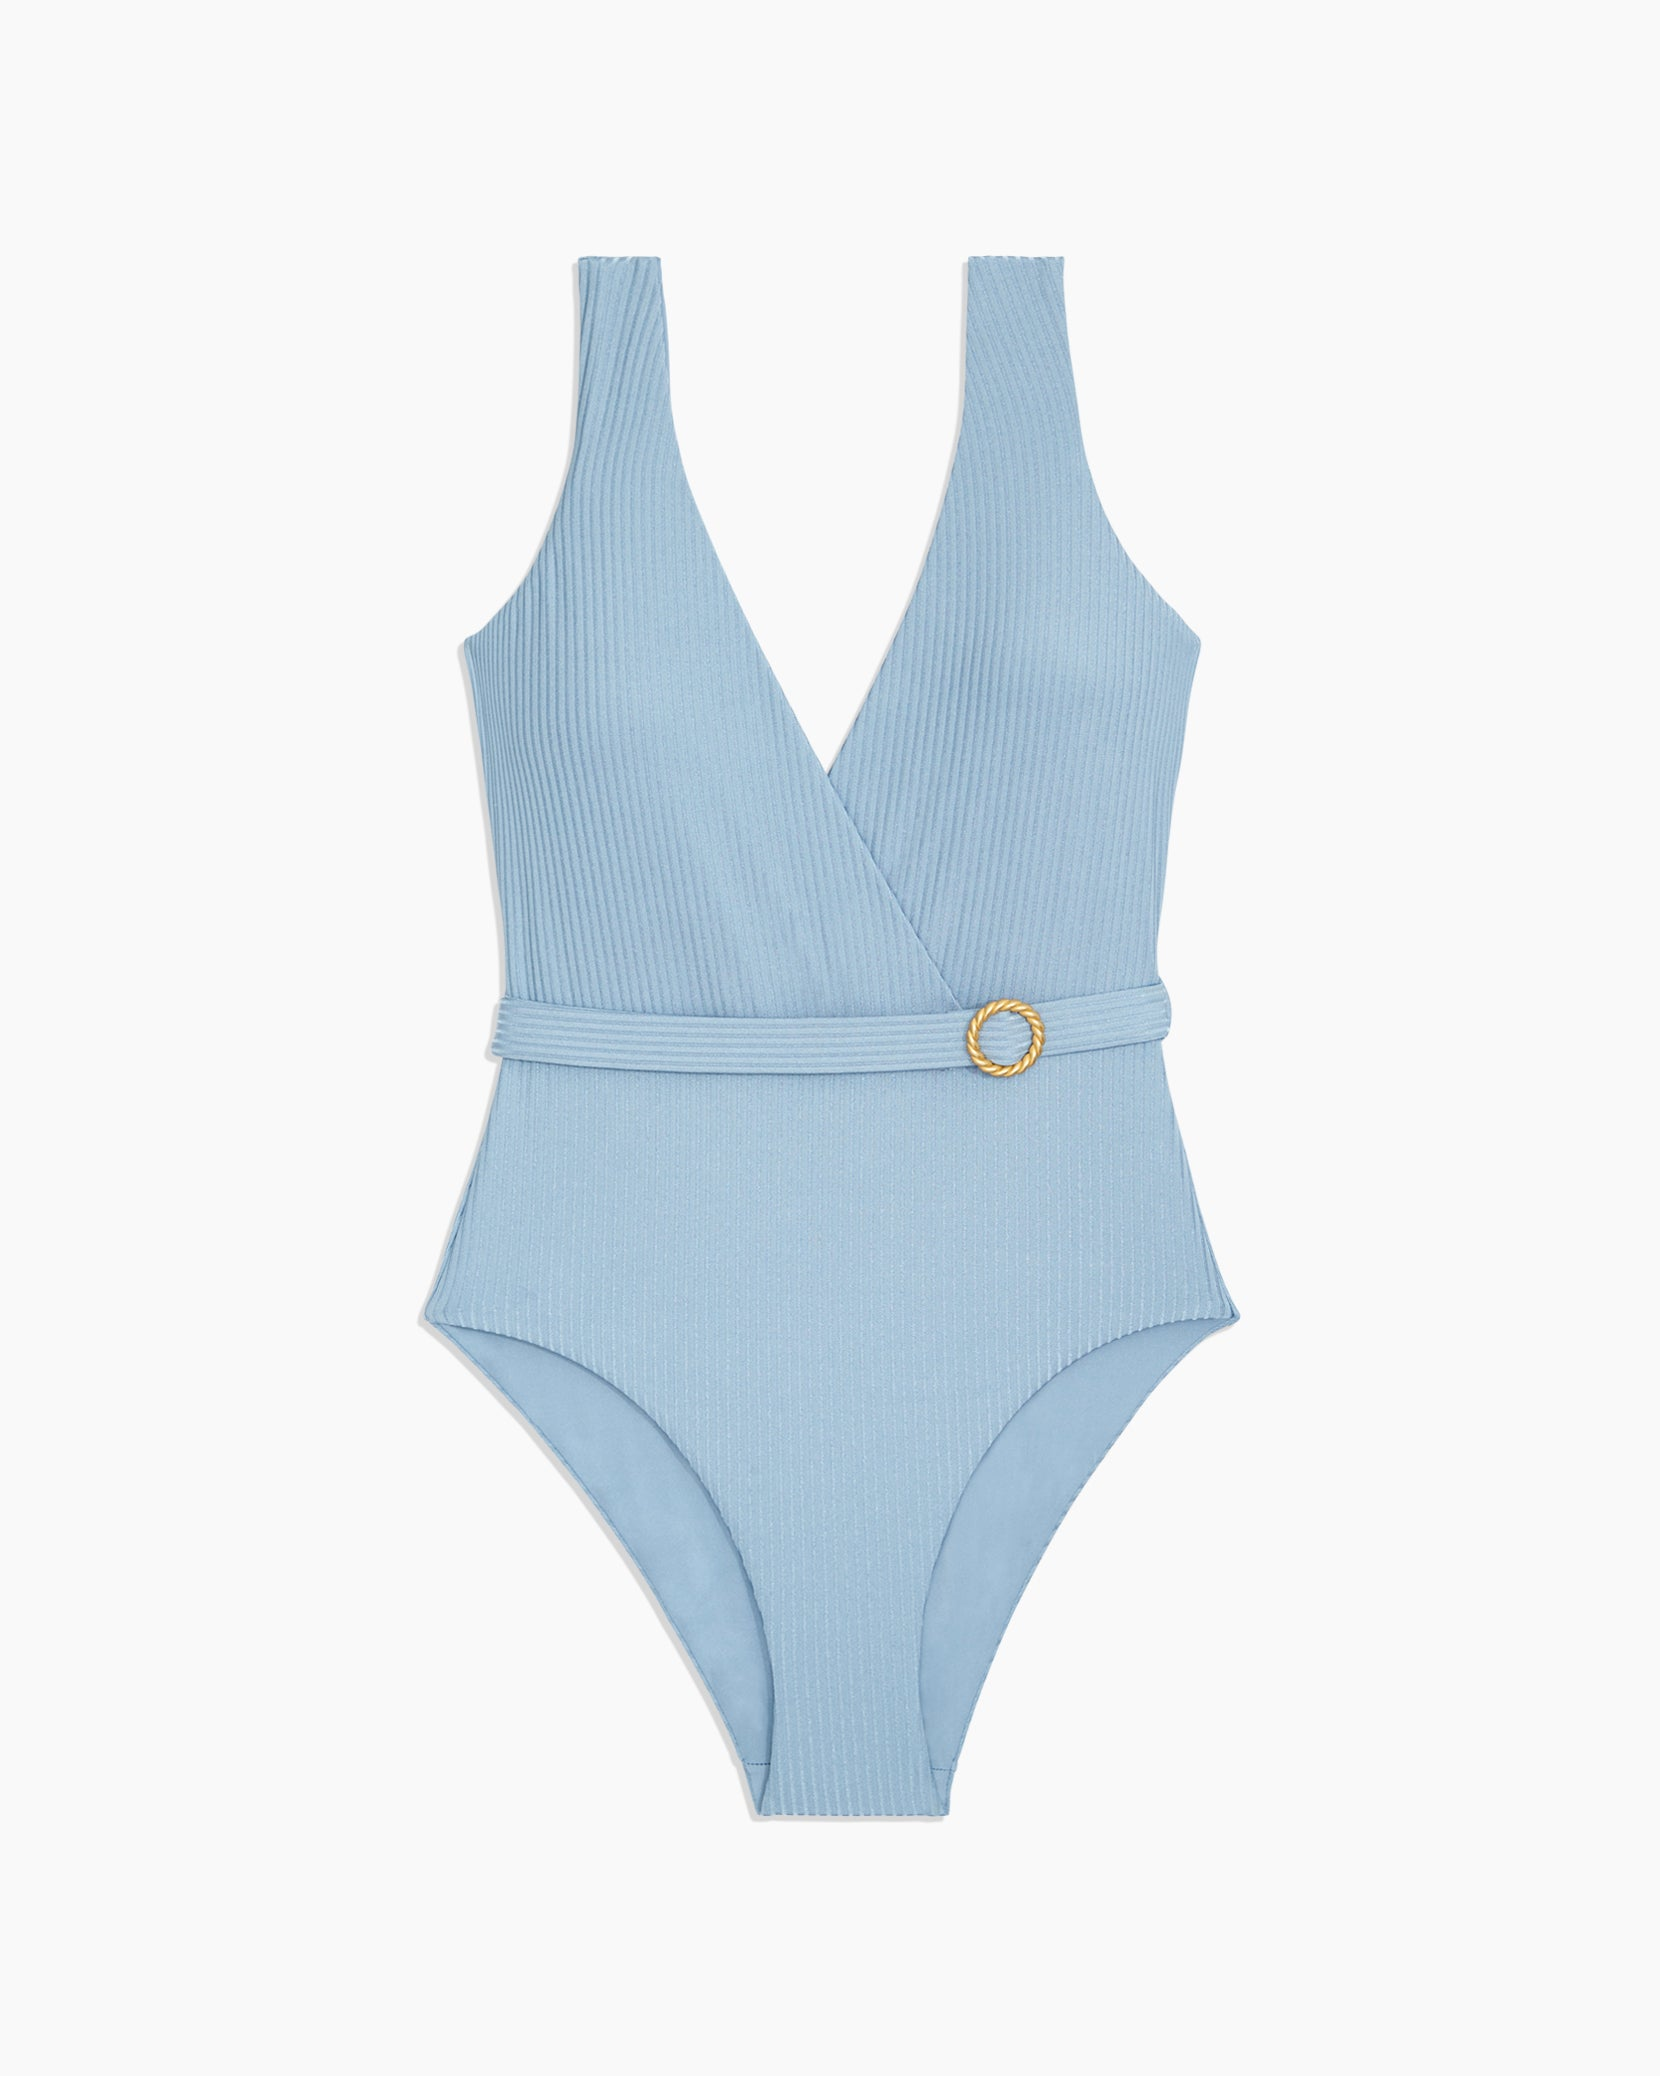 Shimmer Rib Michelle One Piece in Captain Blue - 6 - Onia